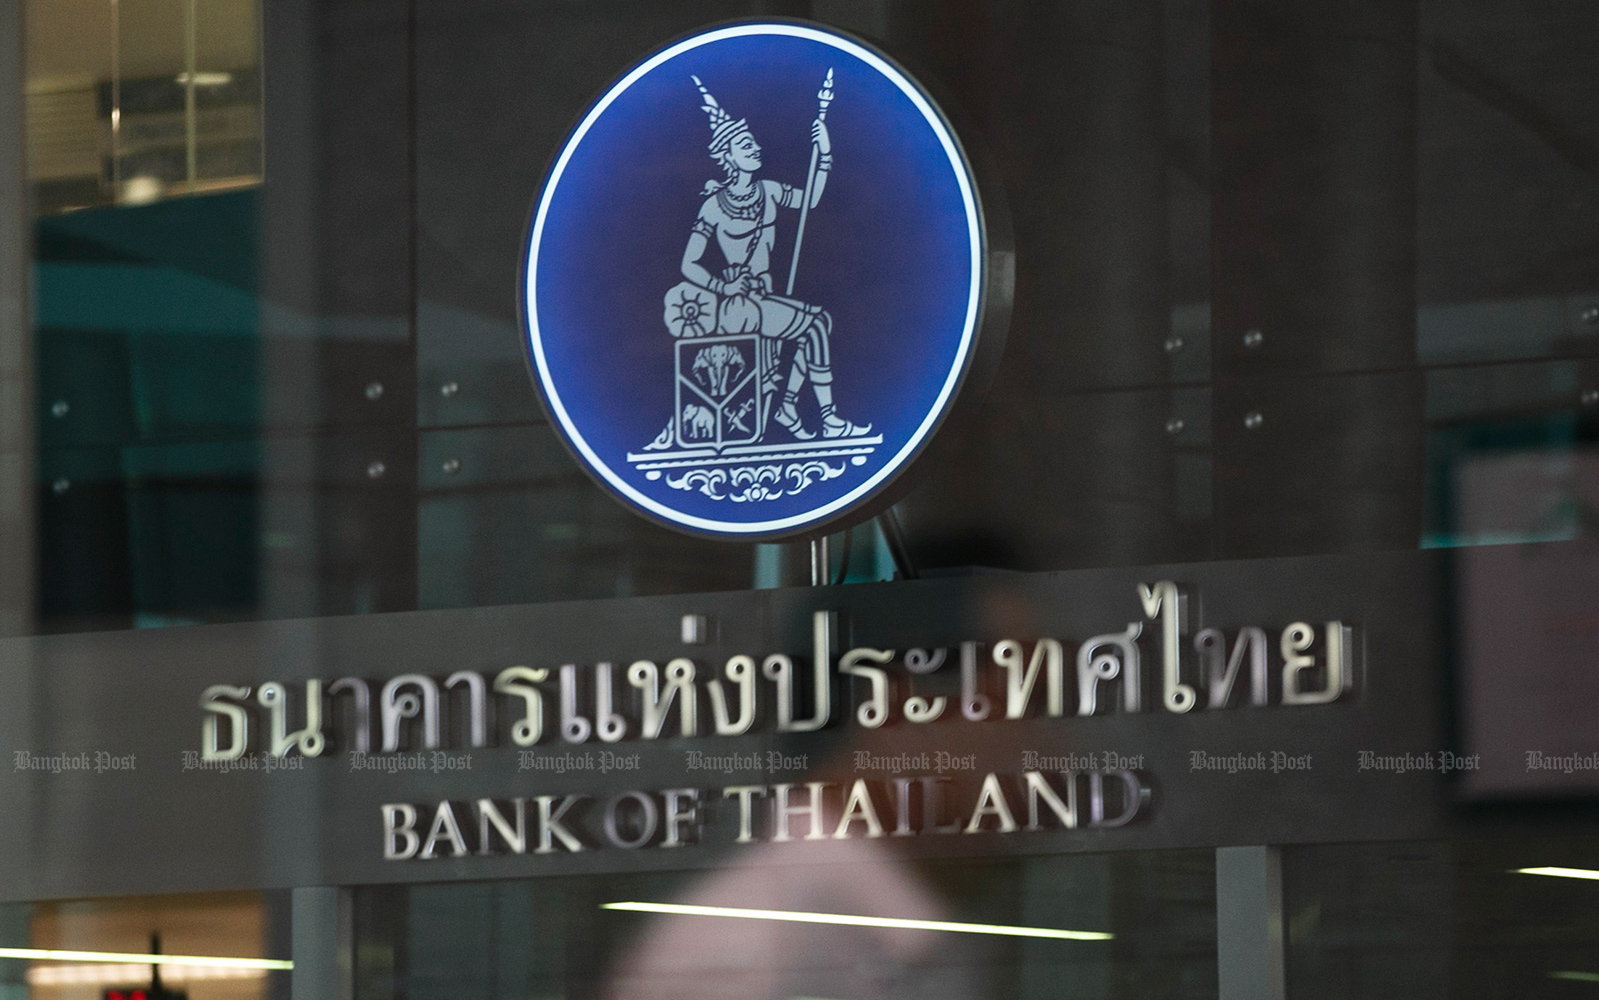 The Bank of Thailand is proposing an amendment to the Credit Information Business Act of 2002 to attract business operators to become intermediaries in providing loans. (Bangkok Post photo)